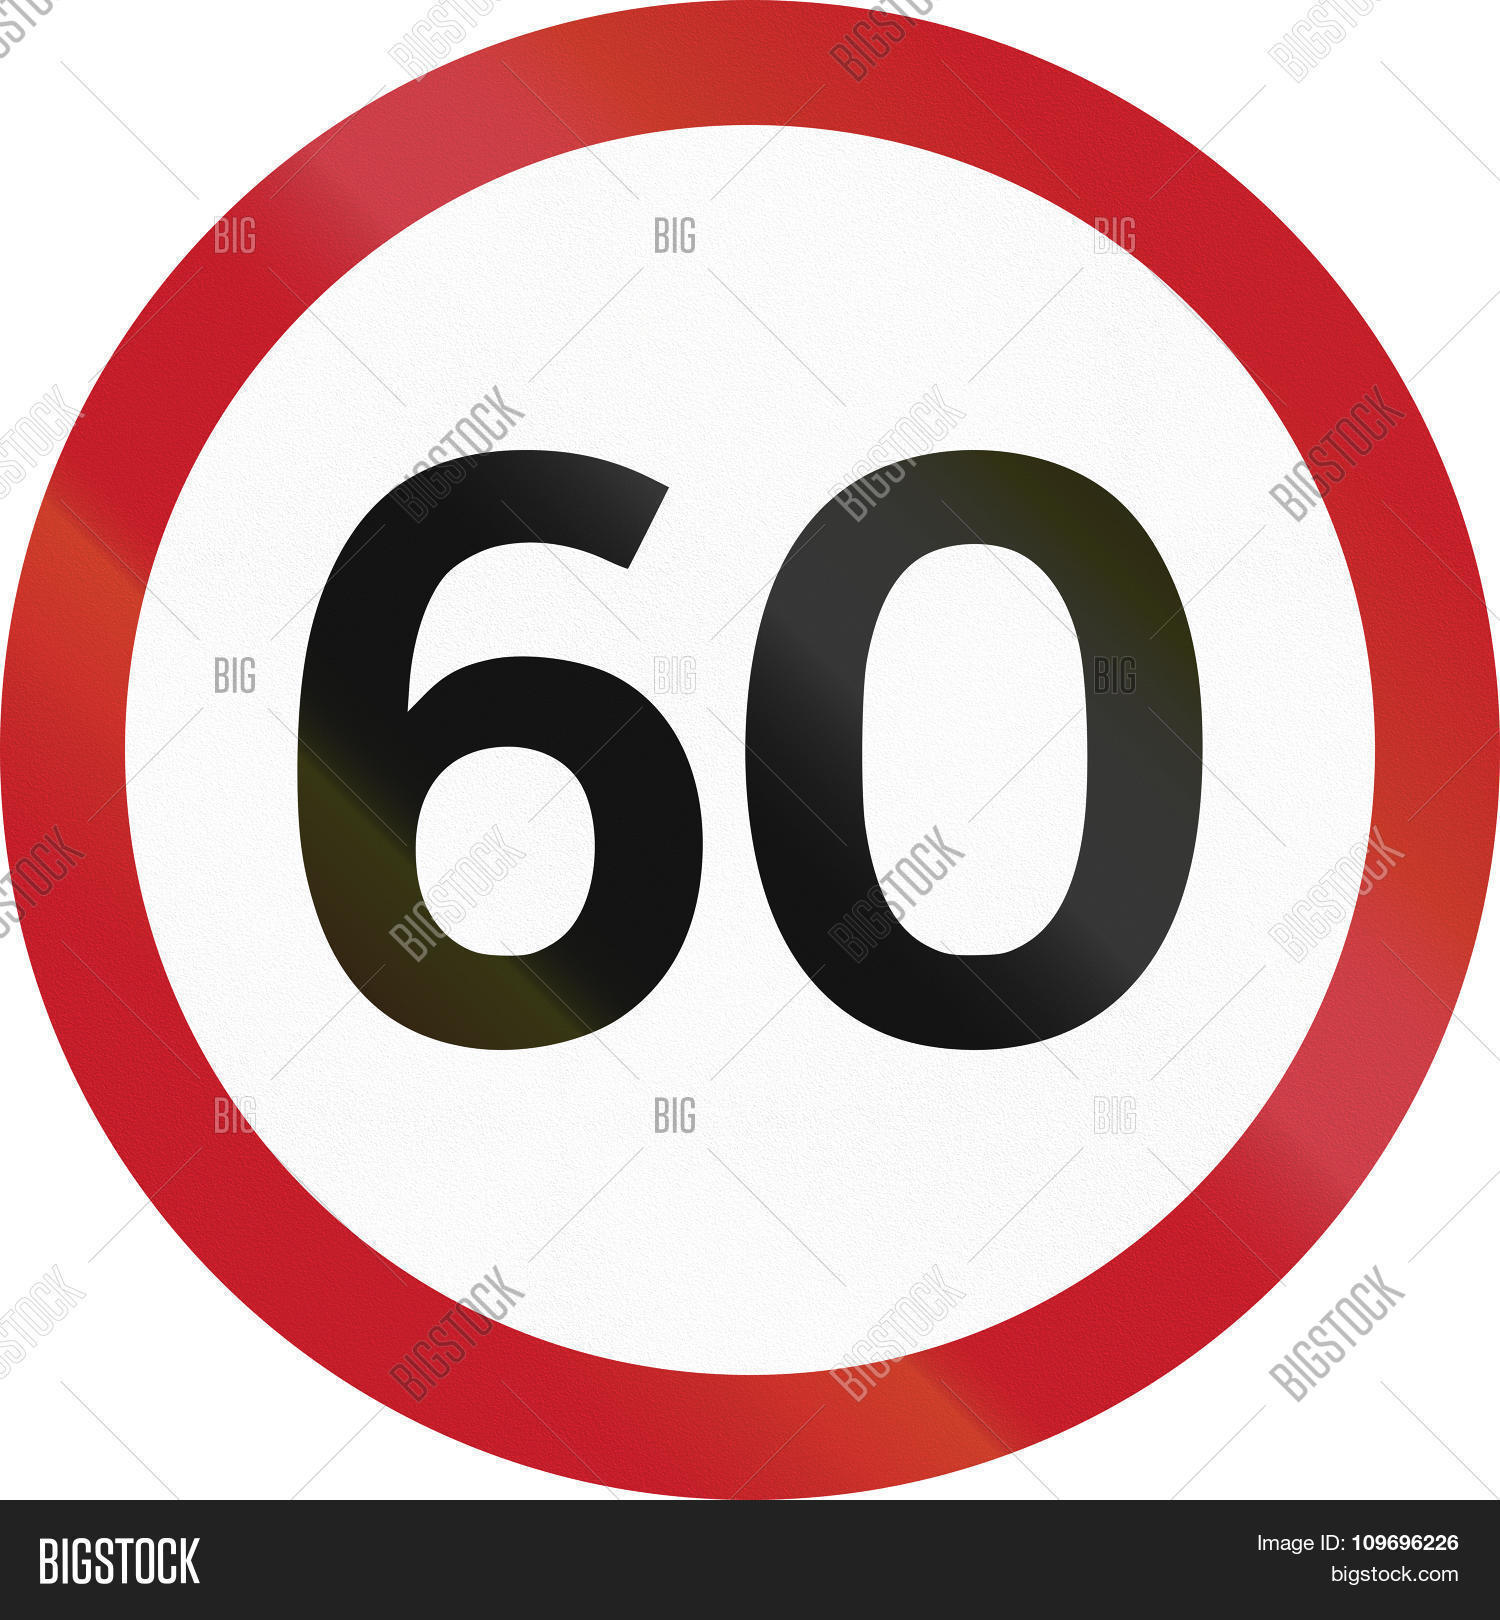 Road sign philippines speed limit image photo bigstock road sign in the philippines speed limit restriction maximum 60 kmh buycottarizona Image collections